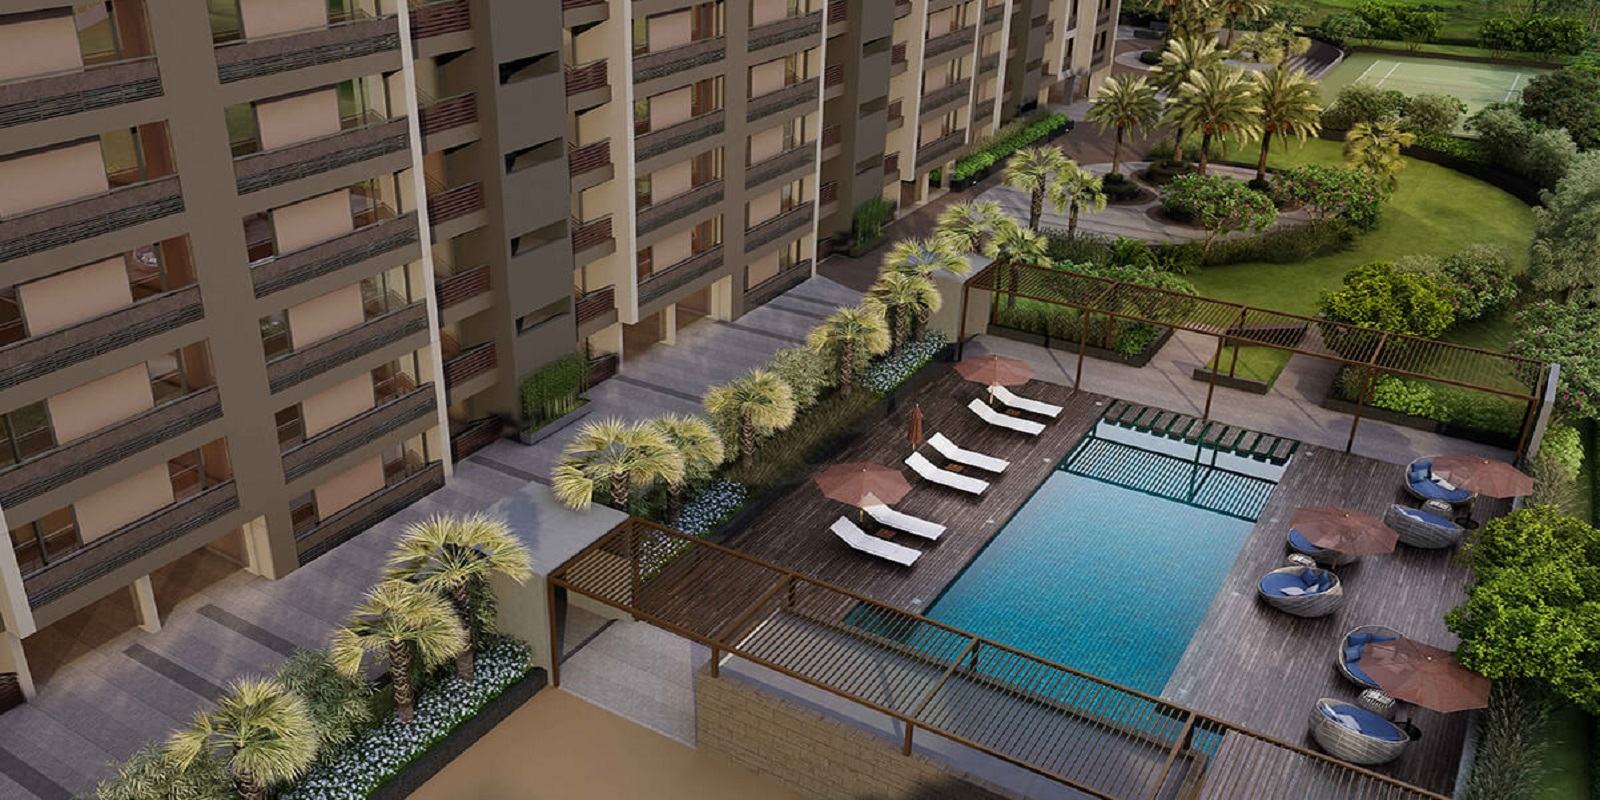 arvind skylands amenities features8